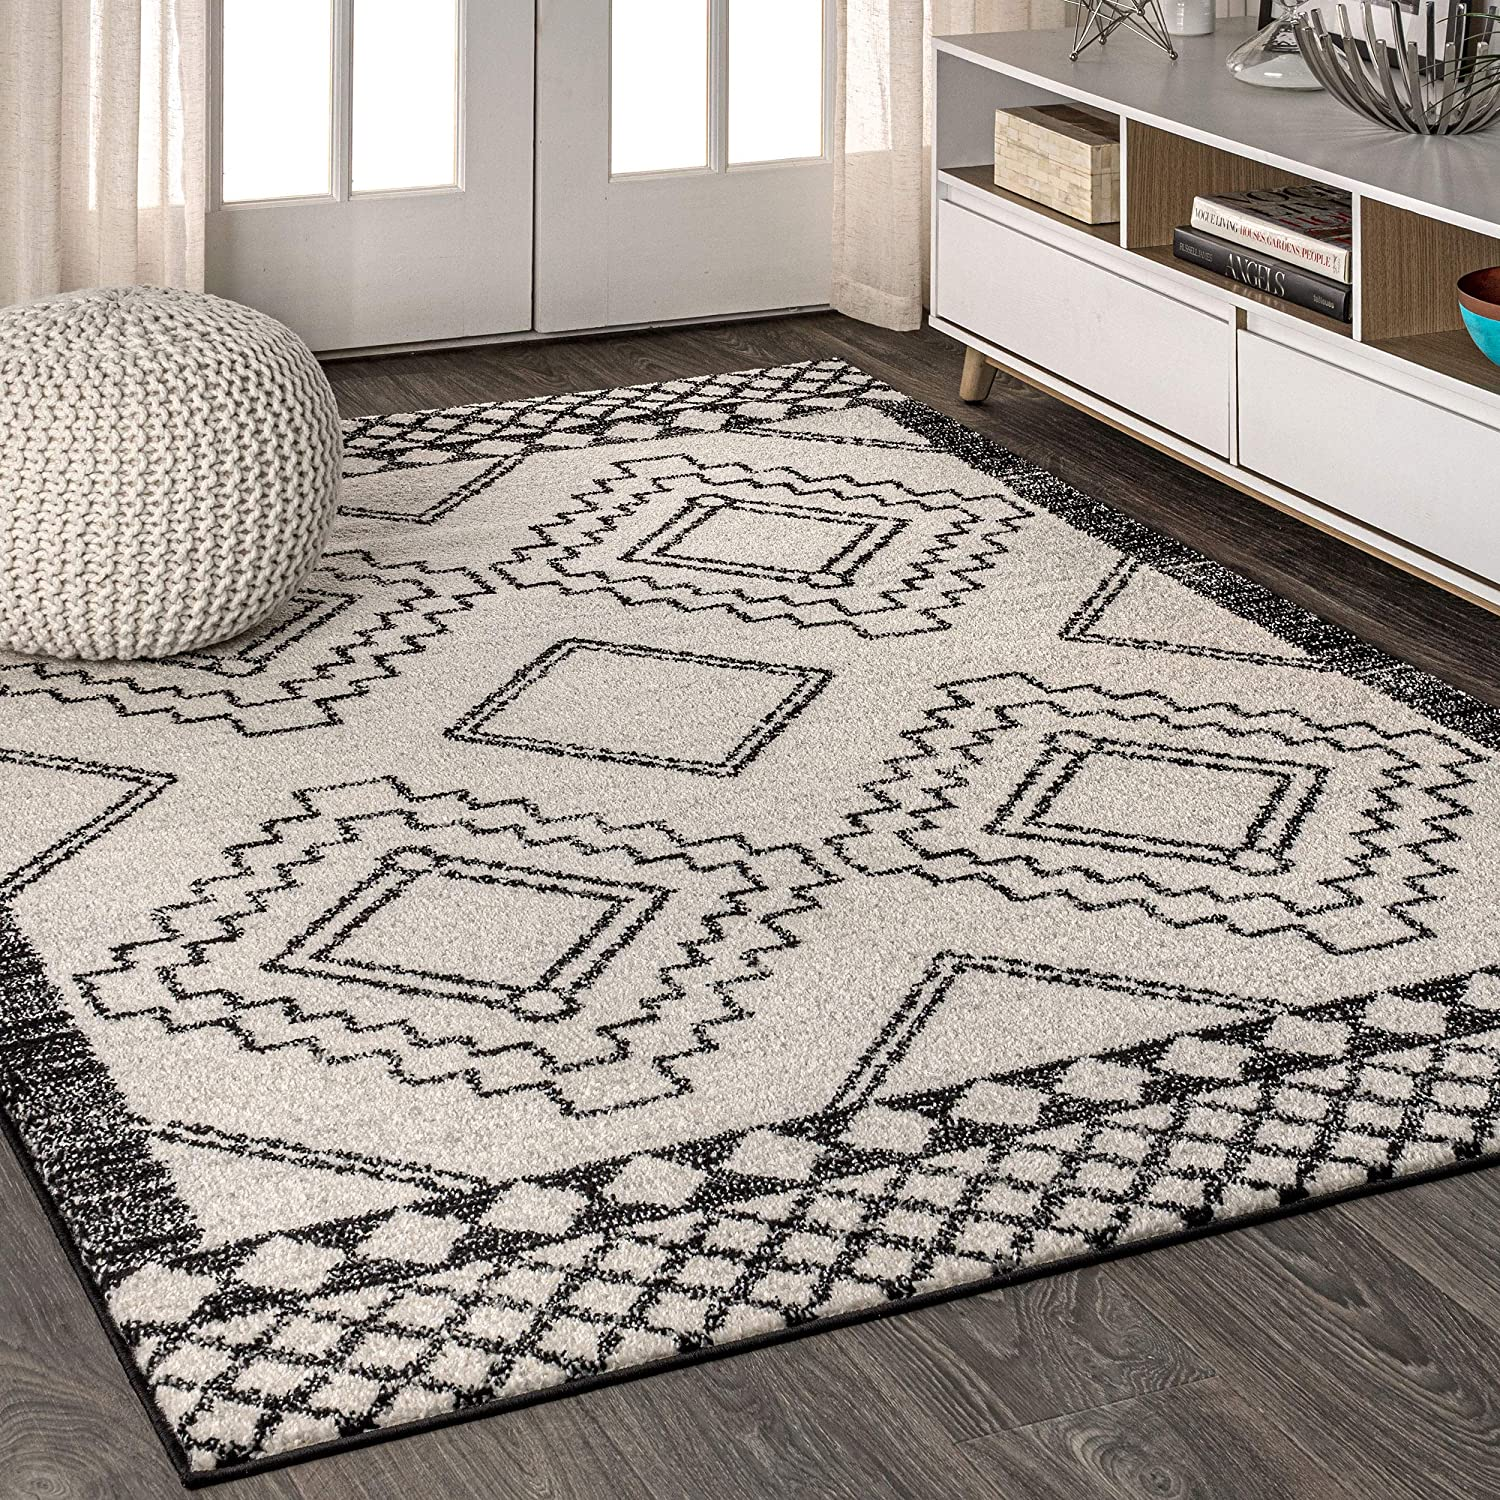 JONATHAN Y Amir Moroccan Beni Souk, Bohemian, Easy Cleaning, for Bedroom, Kitchen, Living Room, Non Shedding Area Rugs, 5 X 8, Cream,Black